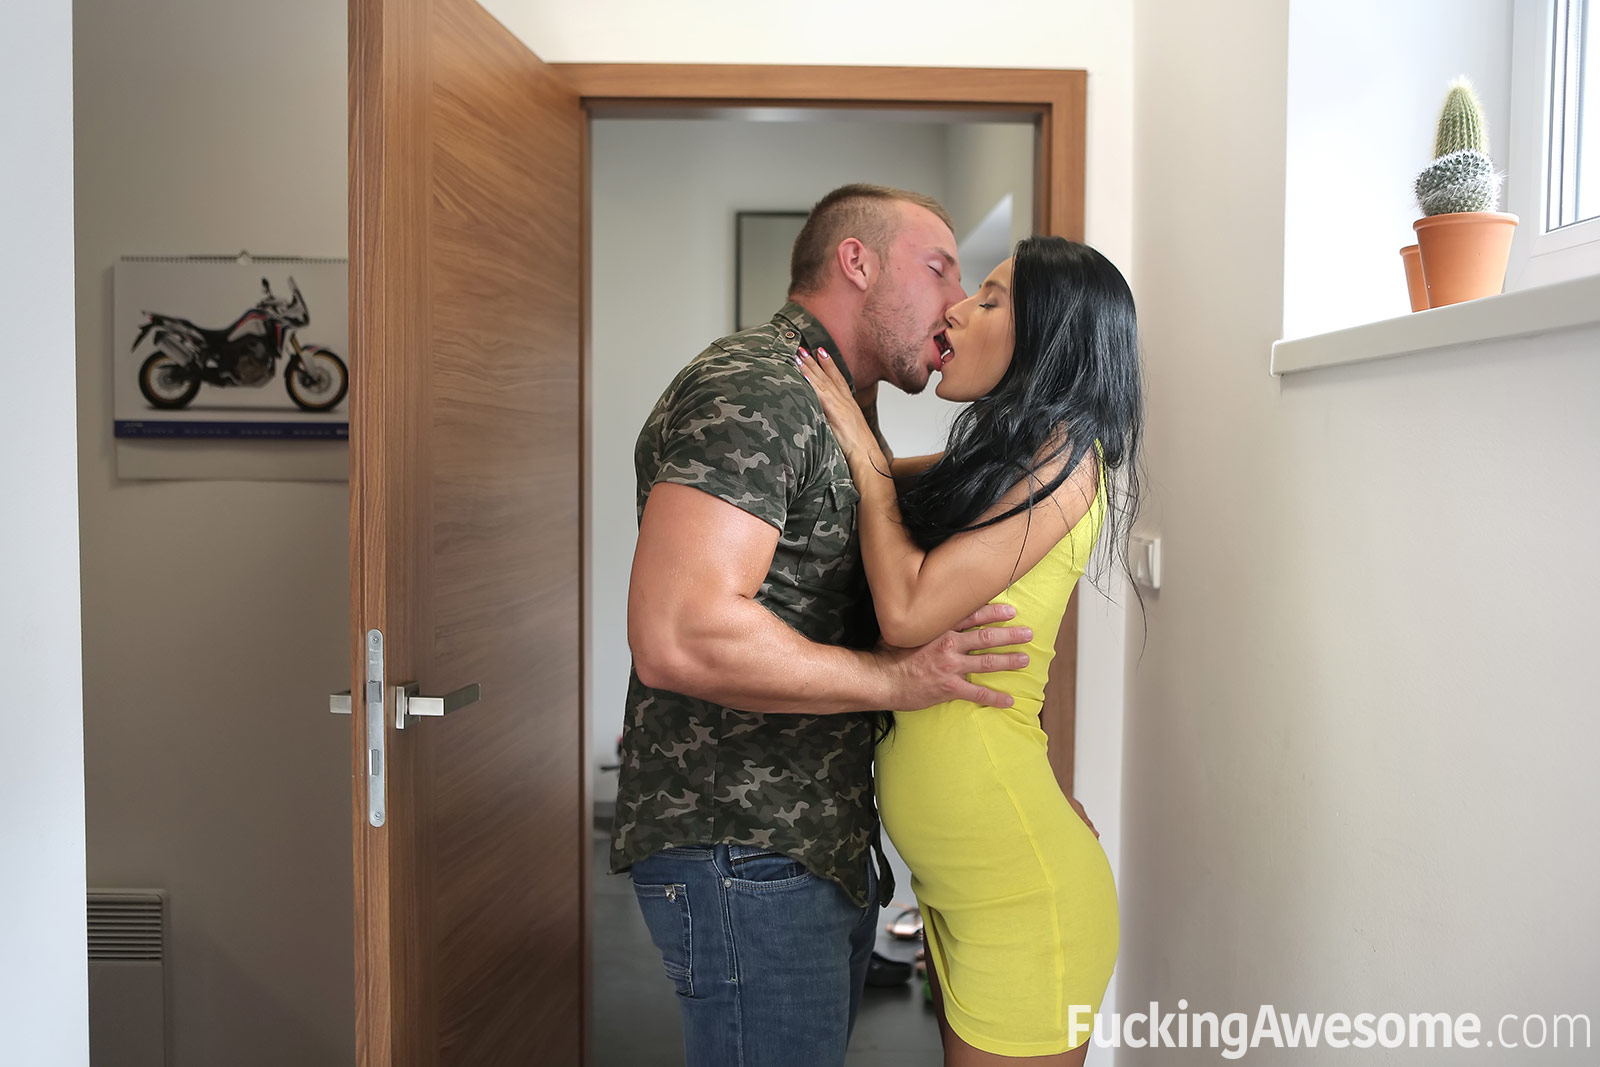 Fucking Awesome Network / Lexi Dona